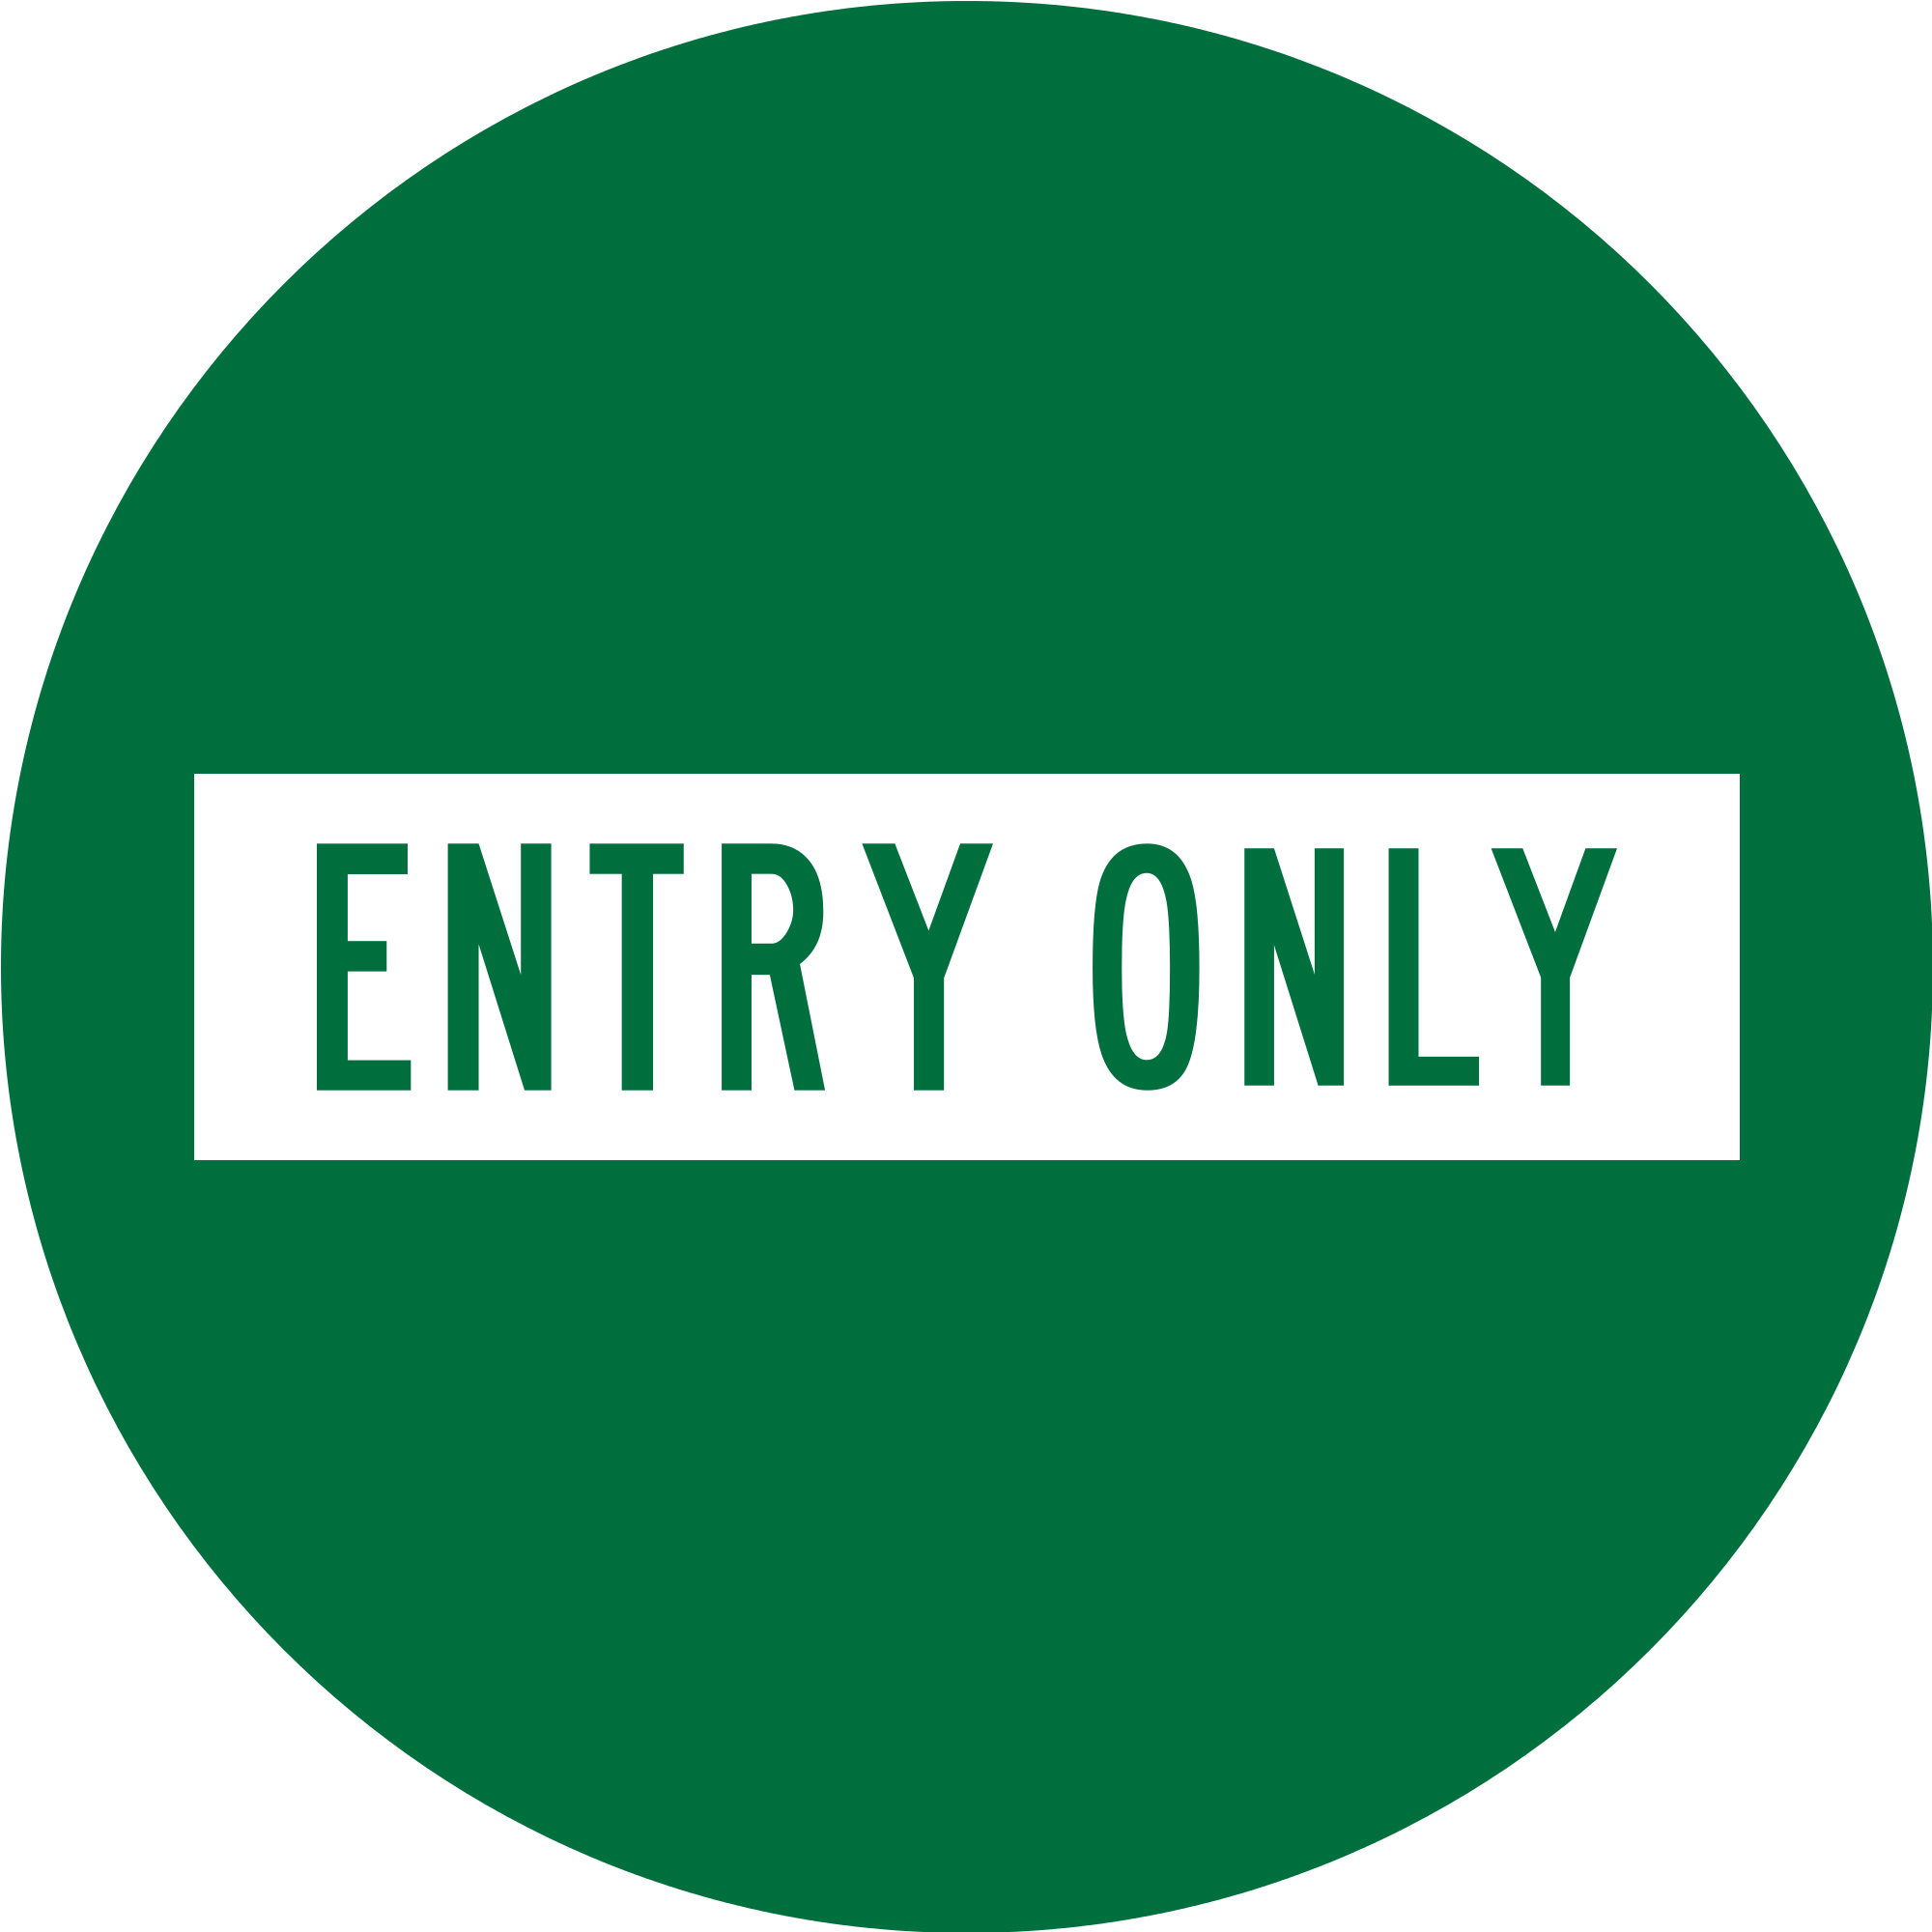 Entry PNG images Download